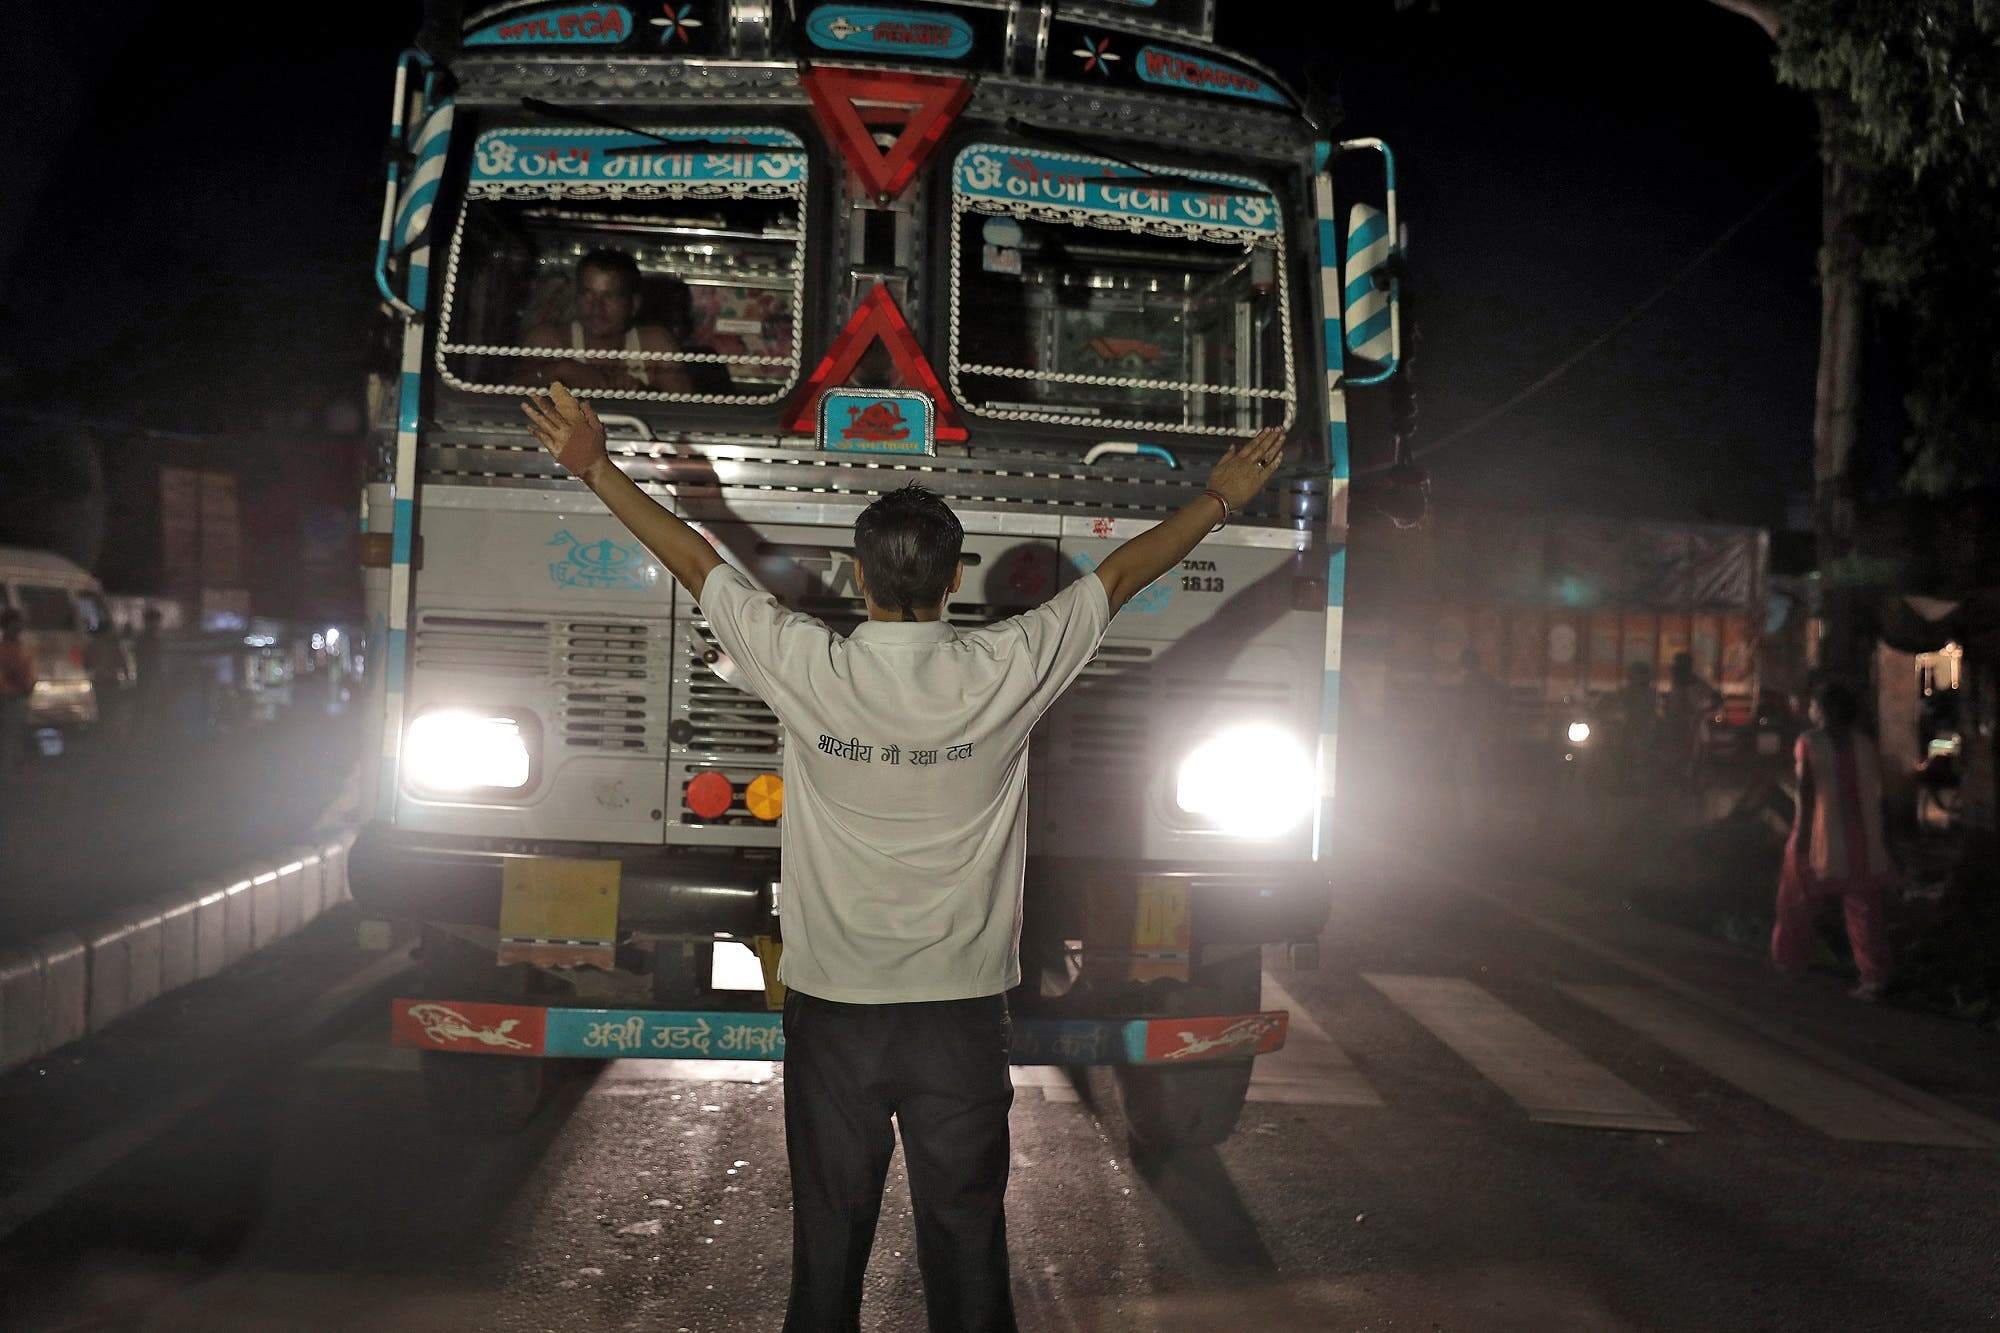 Pawan Pandit, a cow vigilante, stops a lorry at a road block near Chandigarh, India, July 6, 2017. (Reuters)